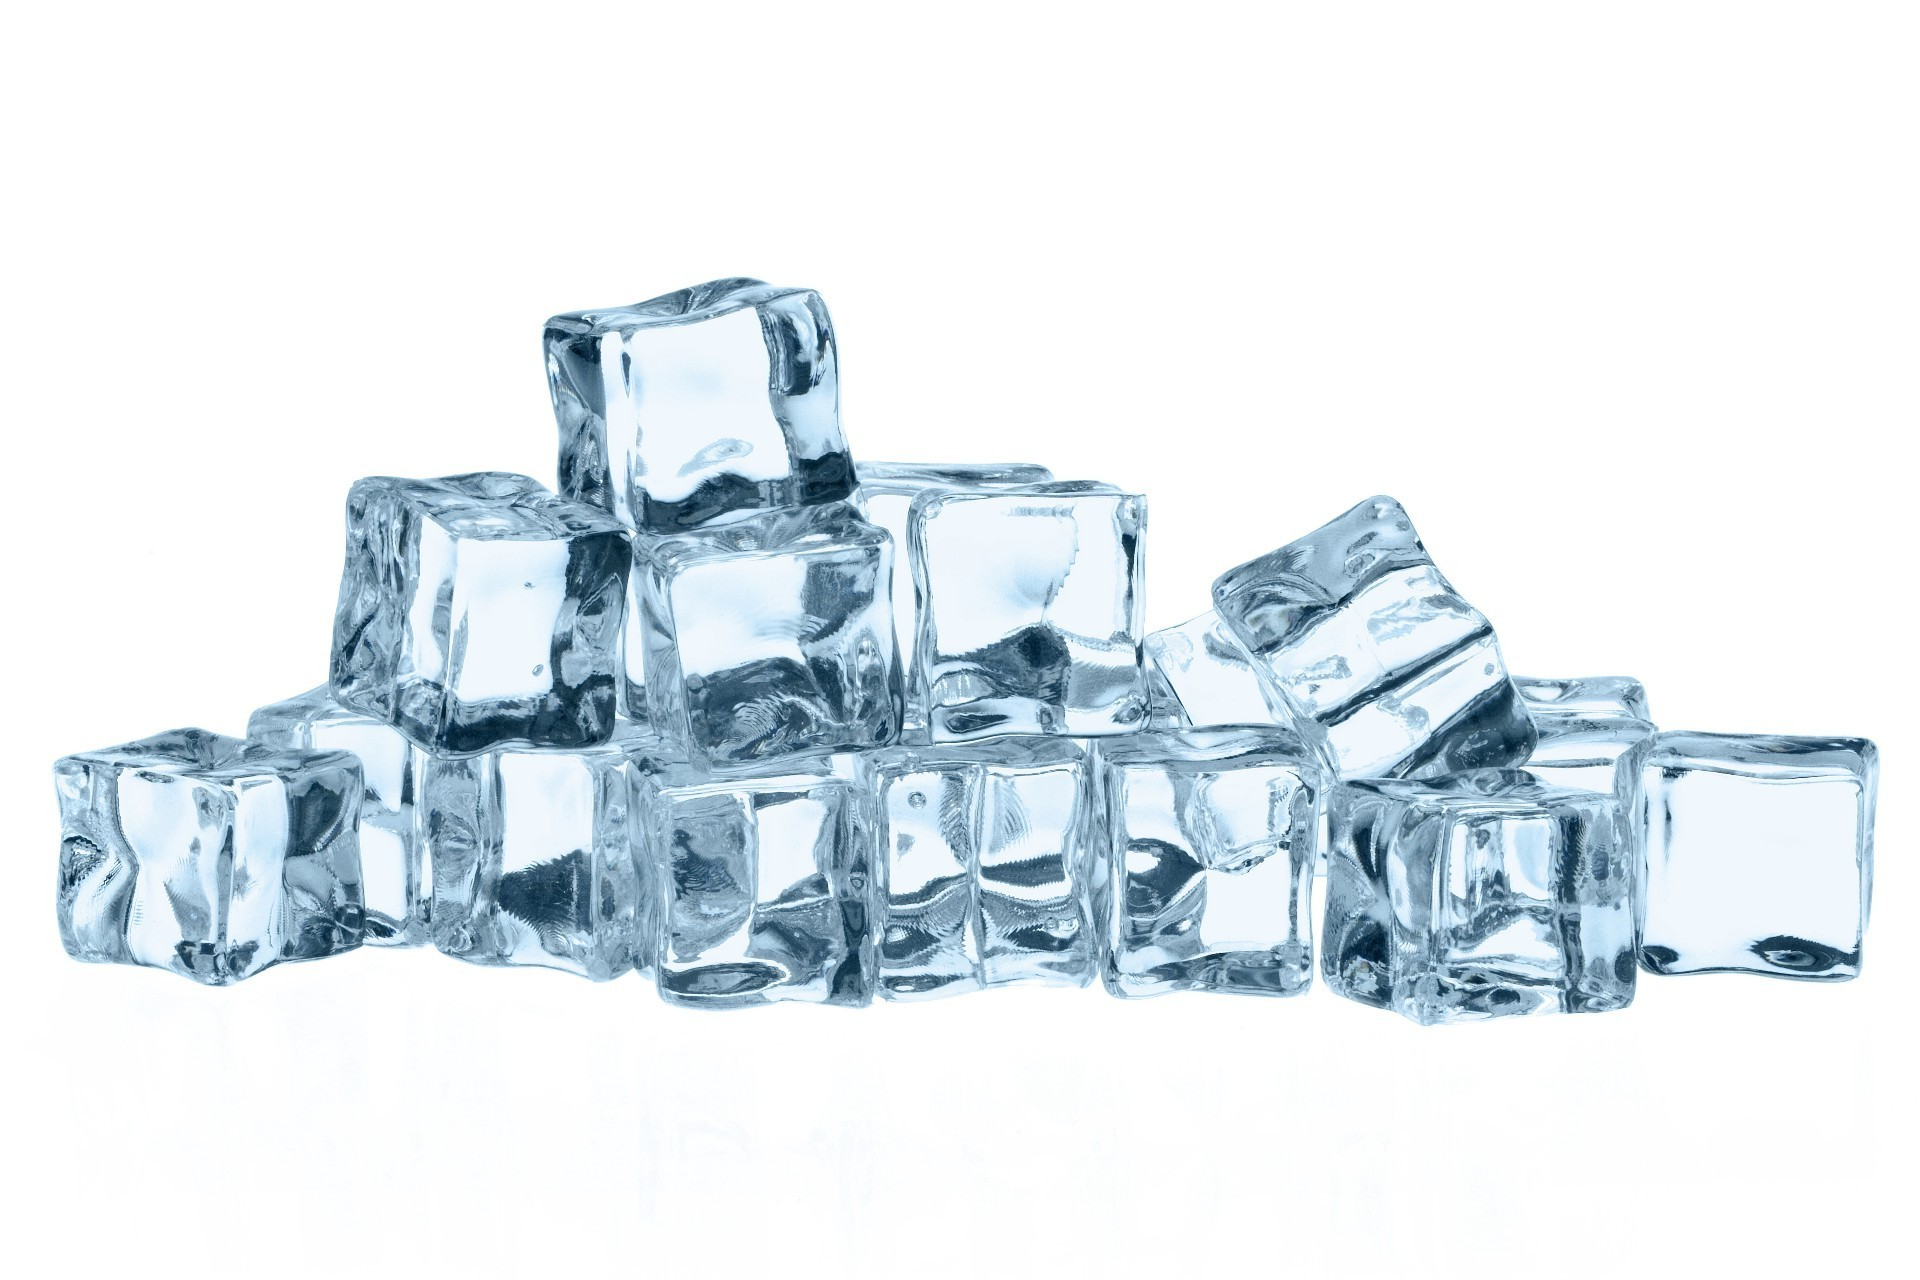 A bunch of ice cubes on white background